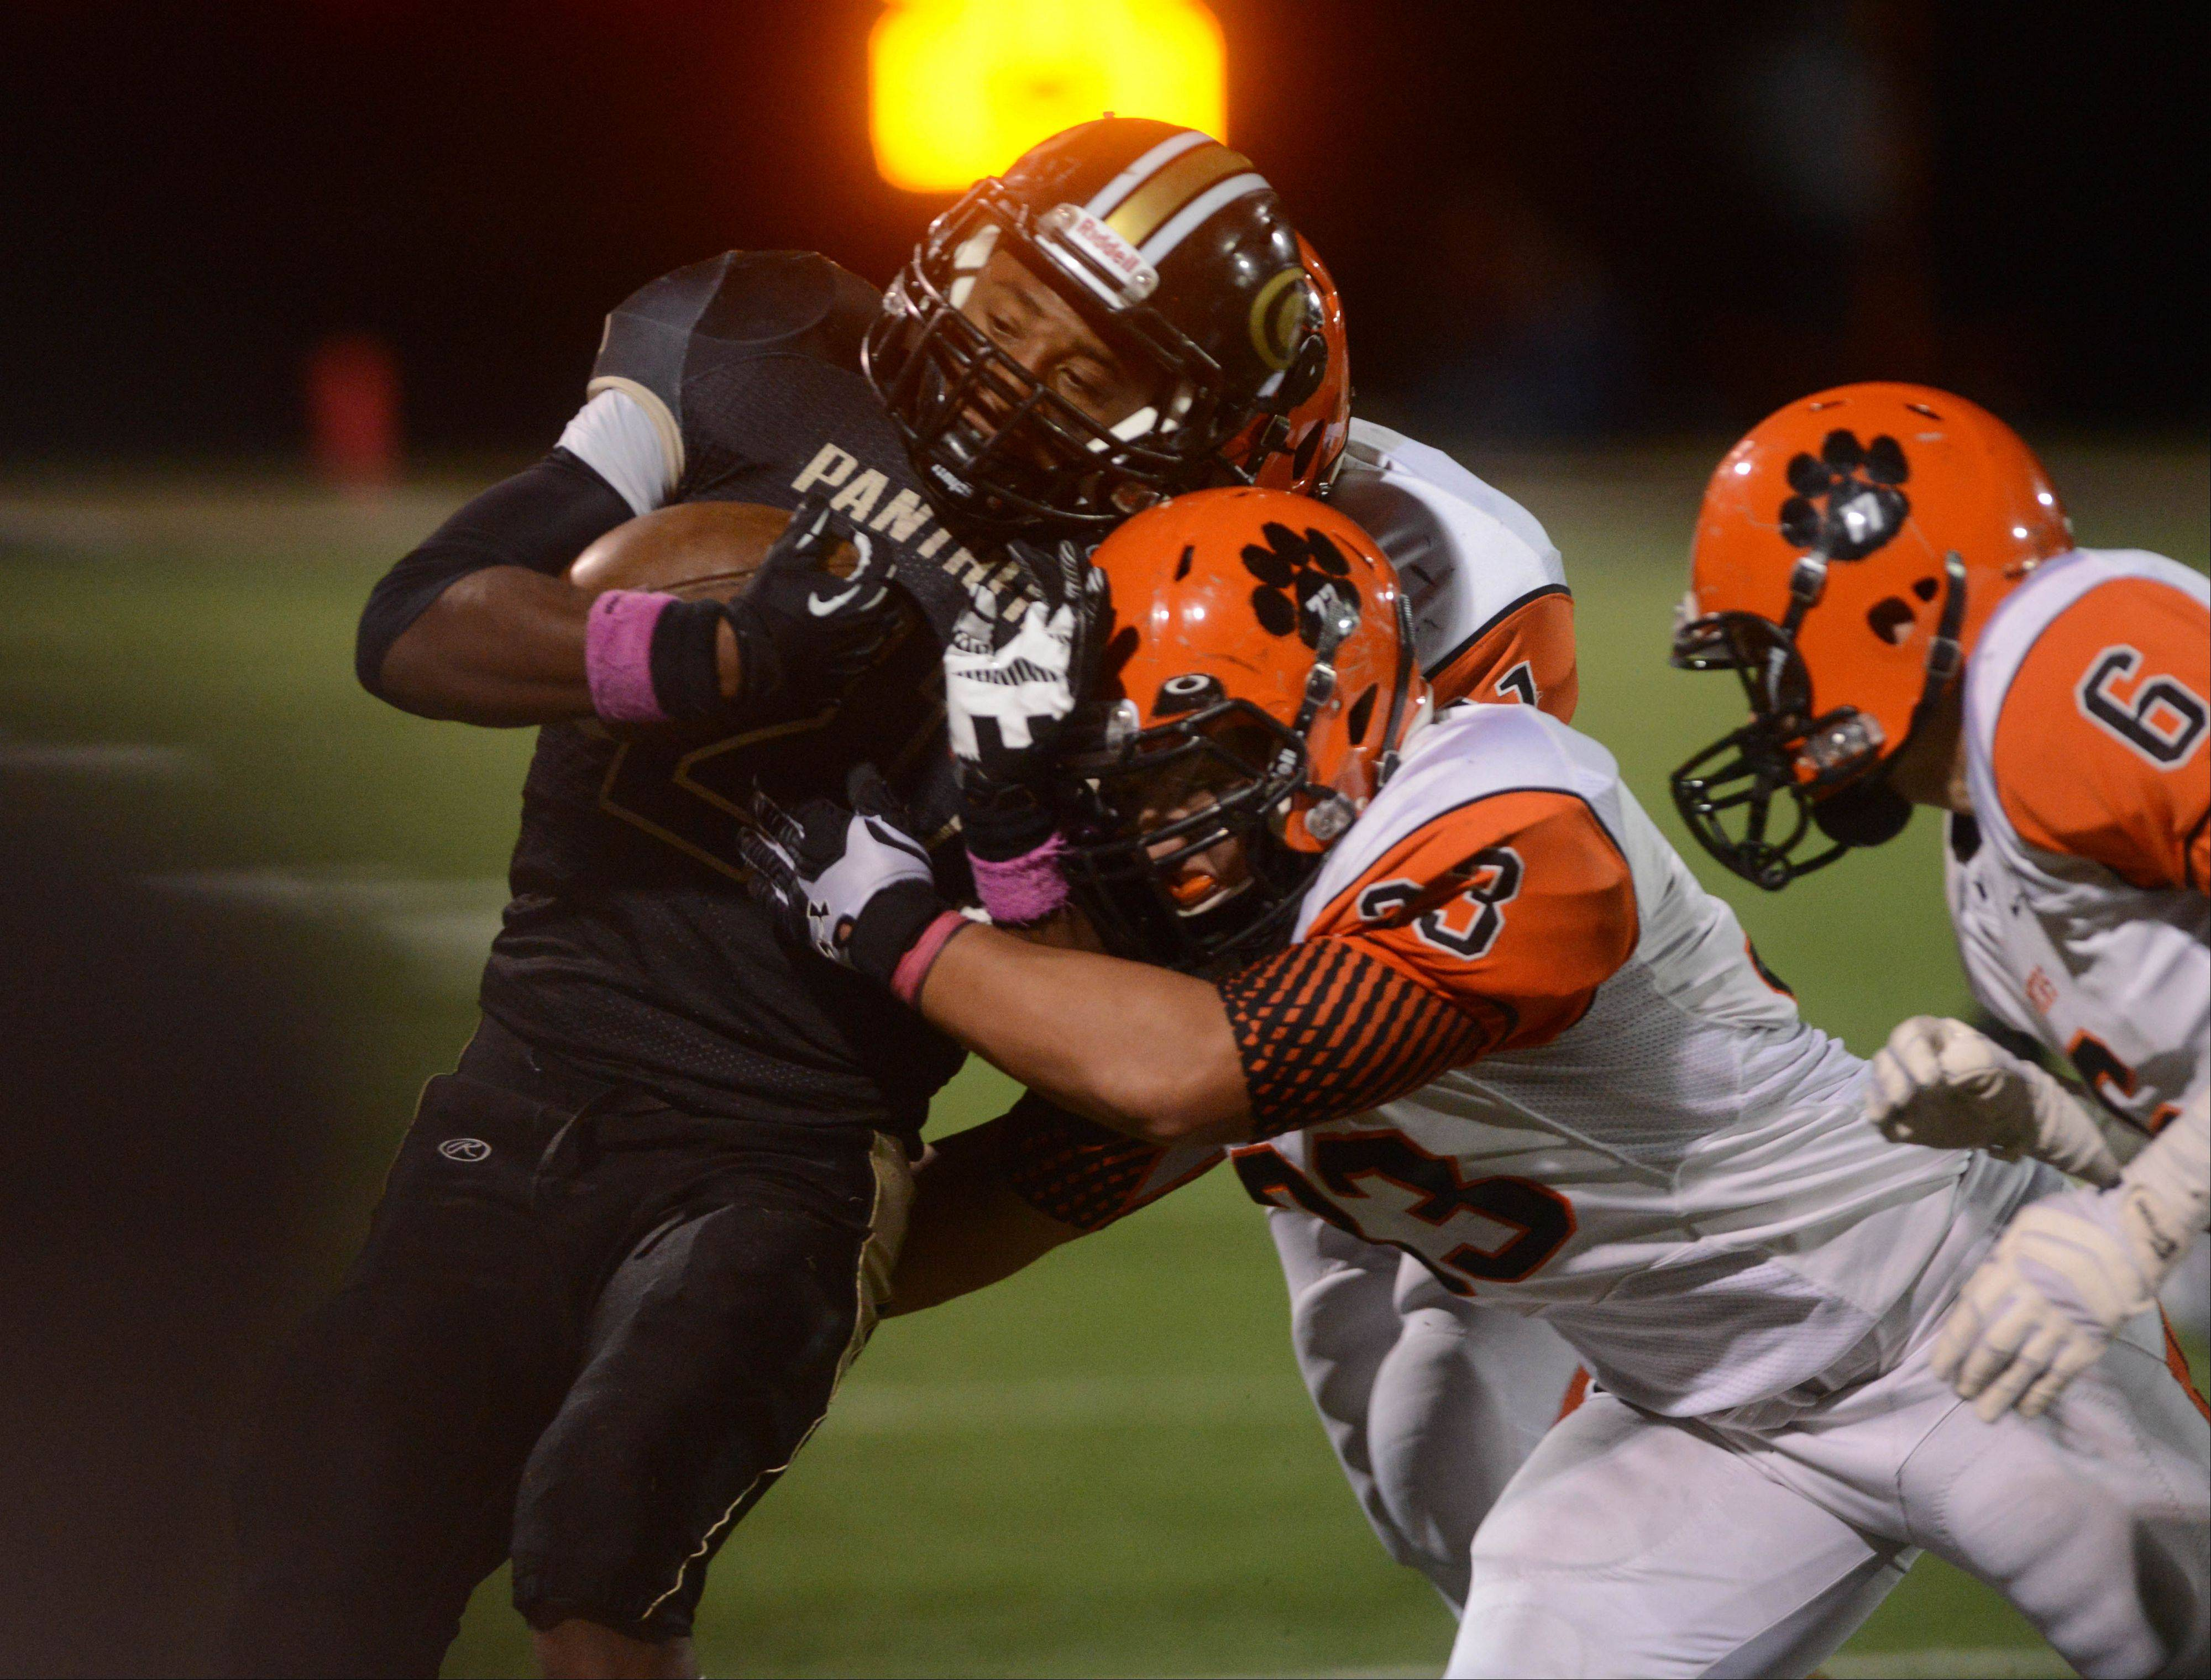 Justin Jackson of Glenbard North is pulled down by Jake Kyllonen of Wheaton Warrenville South during the Wheaton Warrenville South at Glenbard North football game Friday.